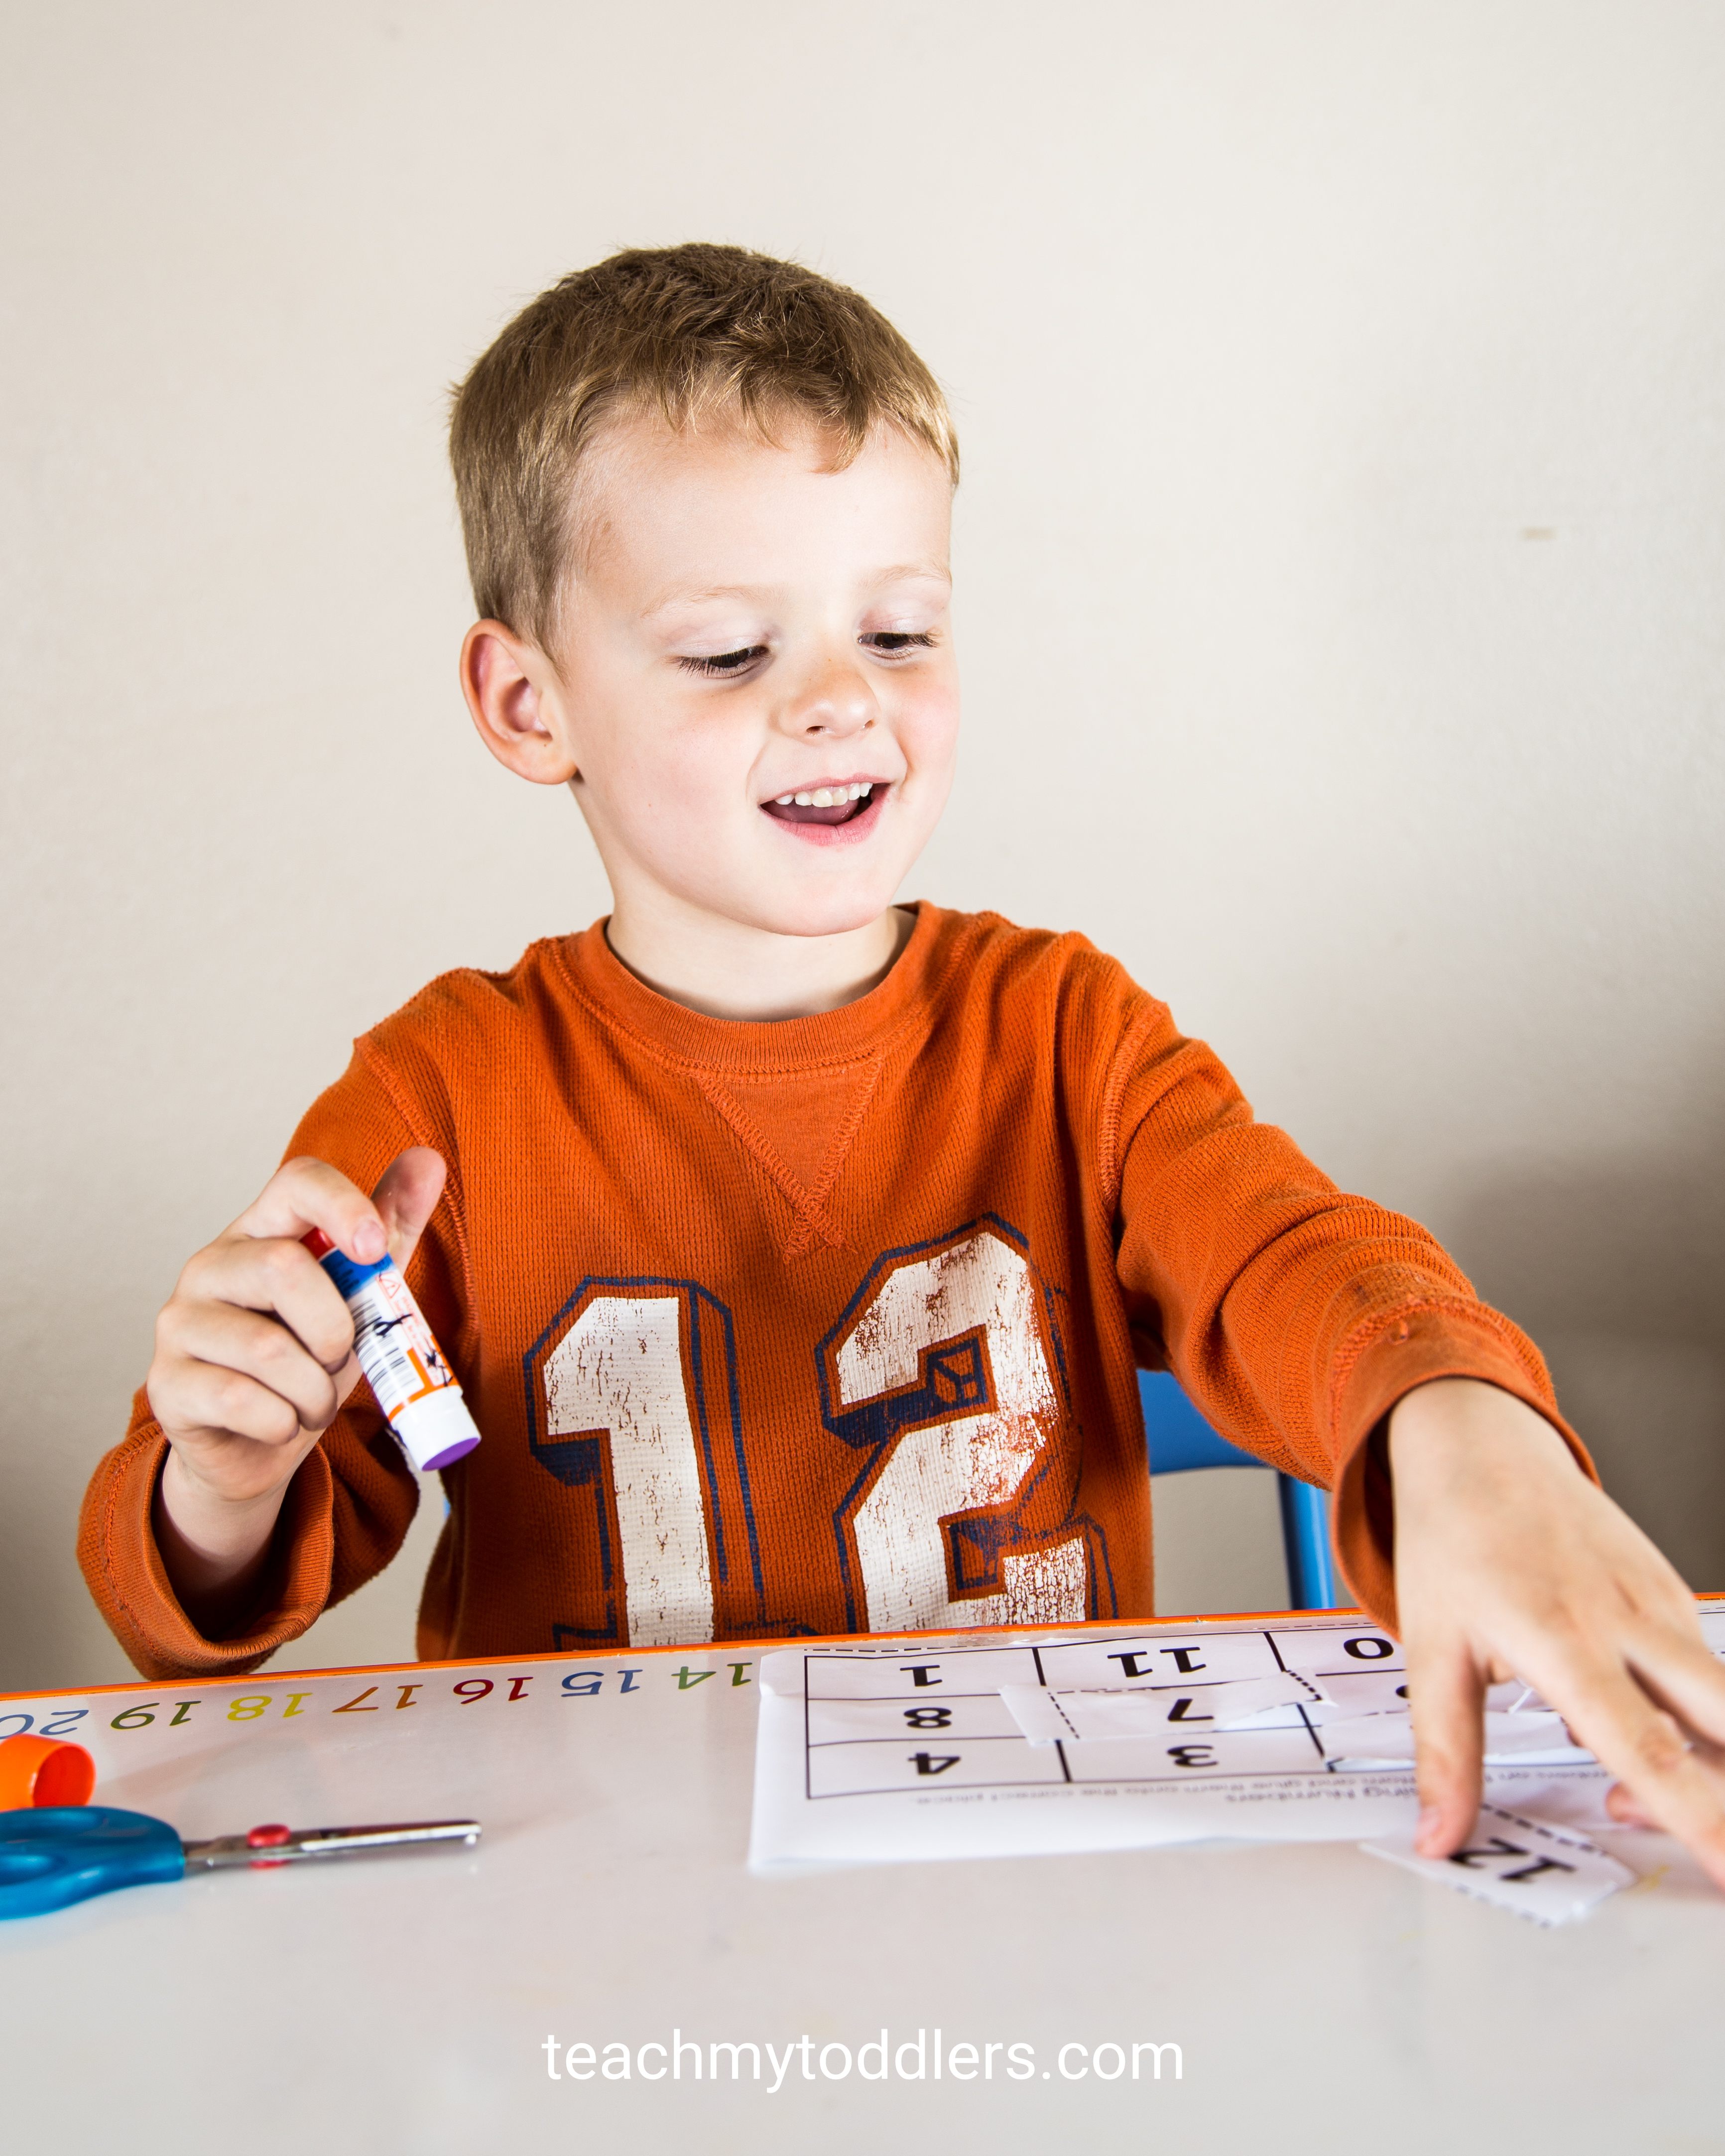 Find out how to use this missing numbers activity to teach preschoolers numbers